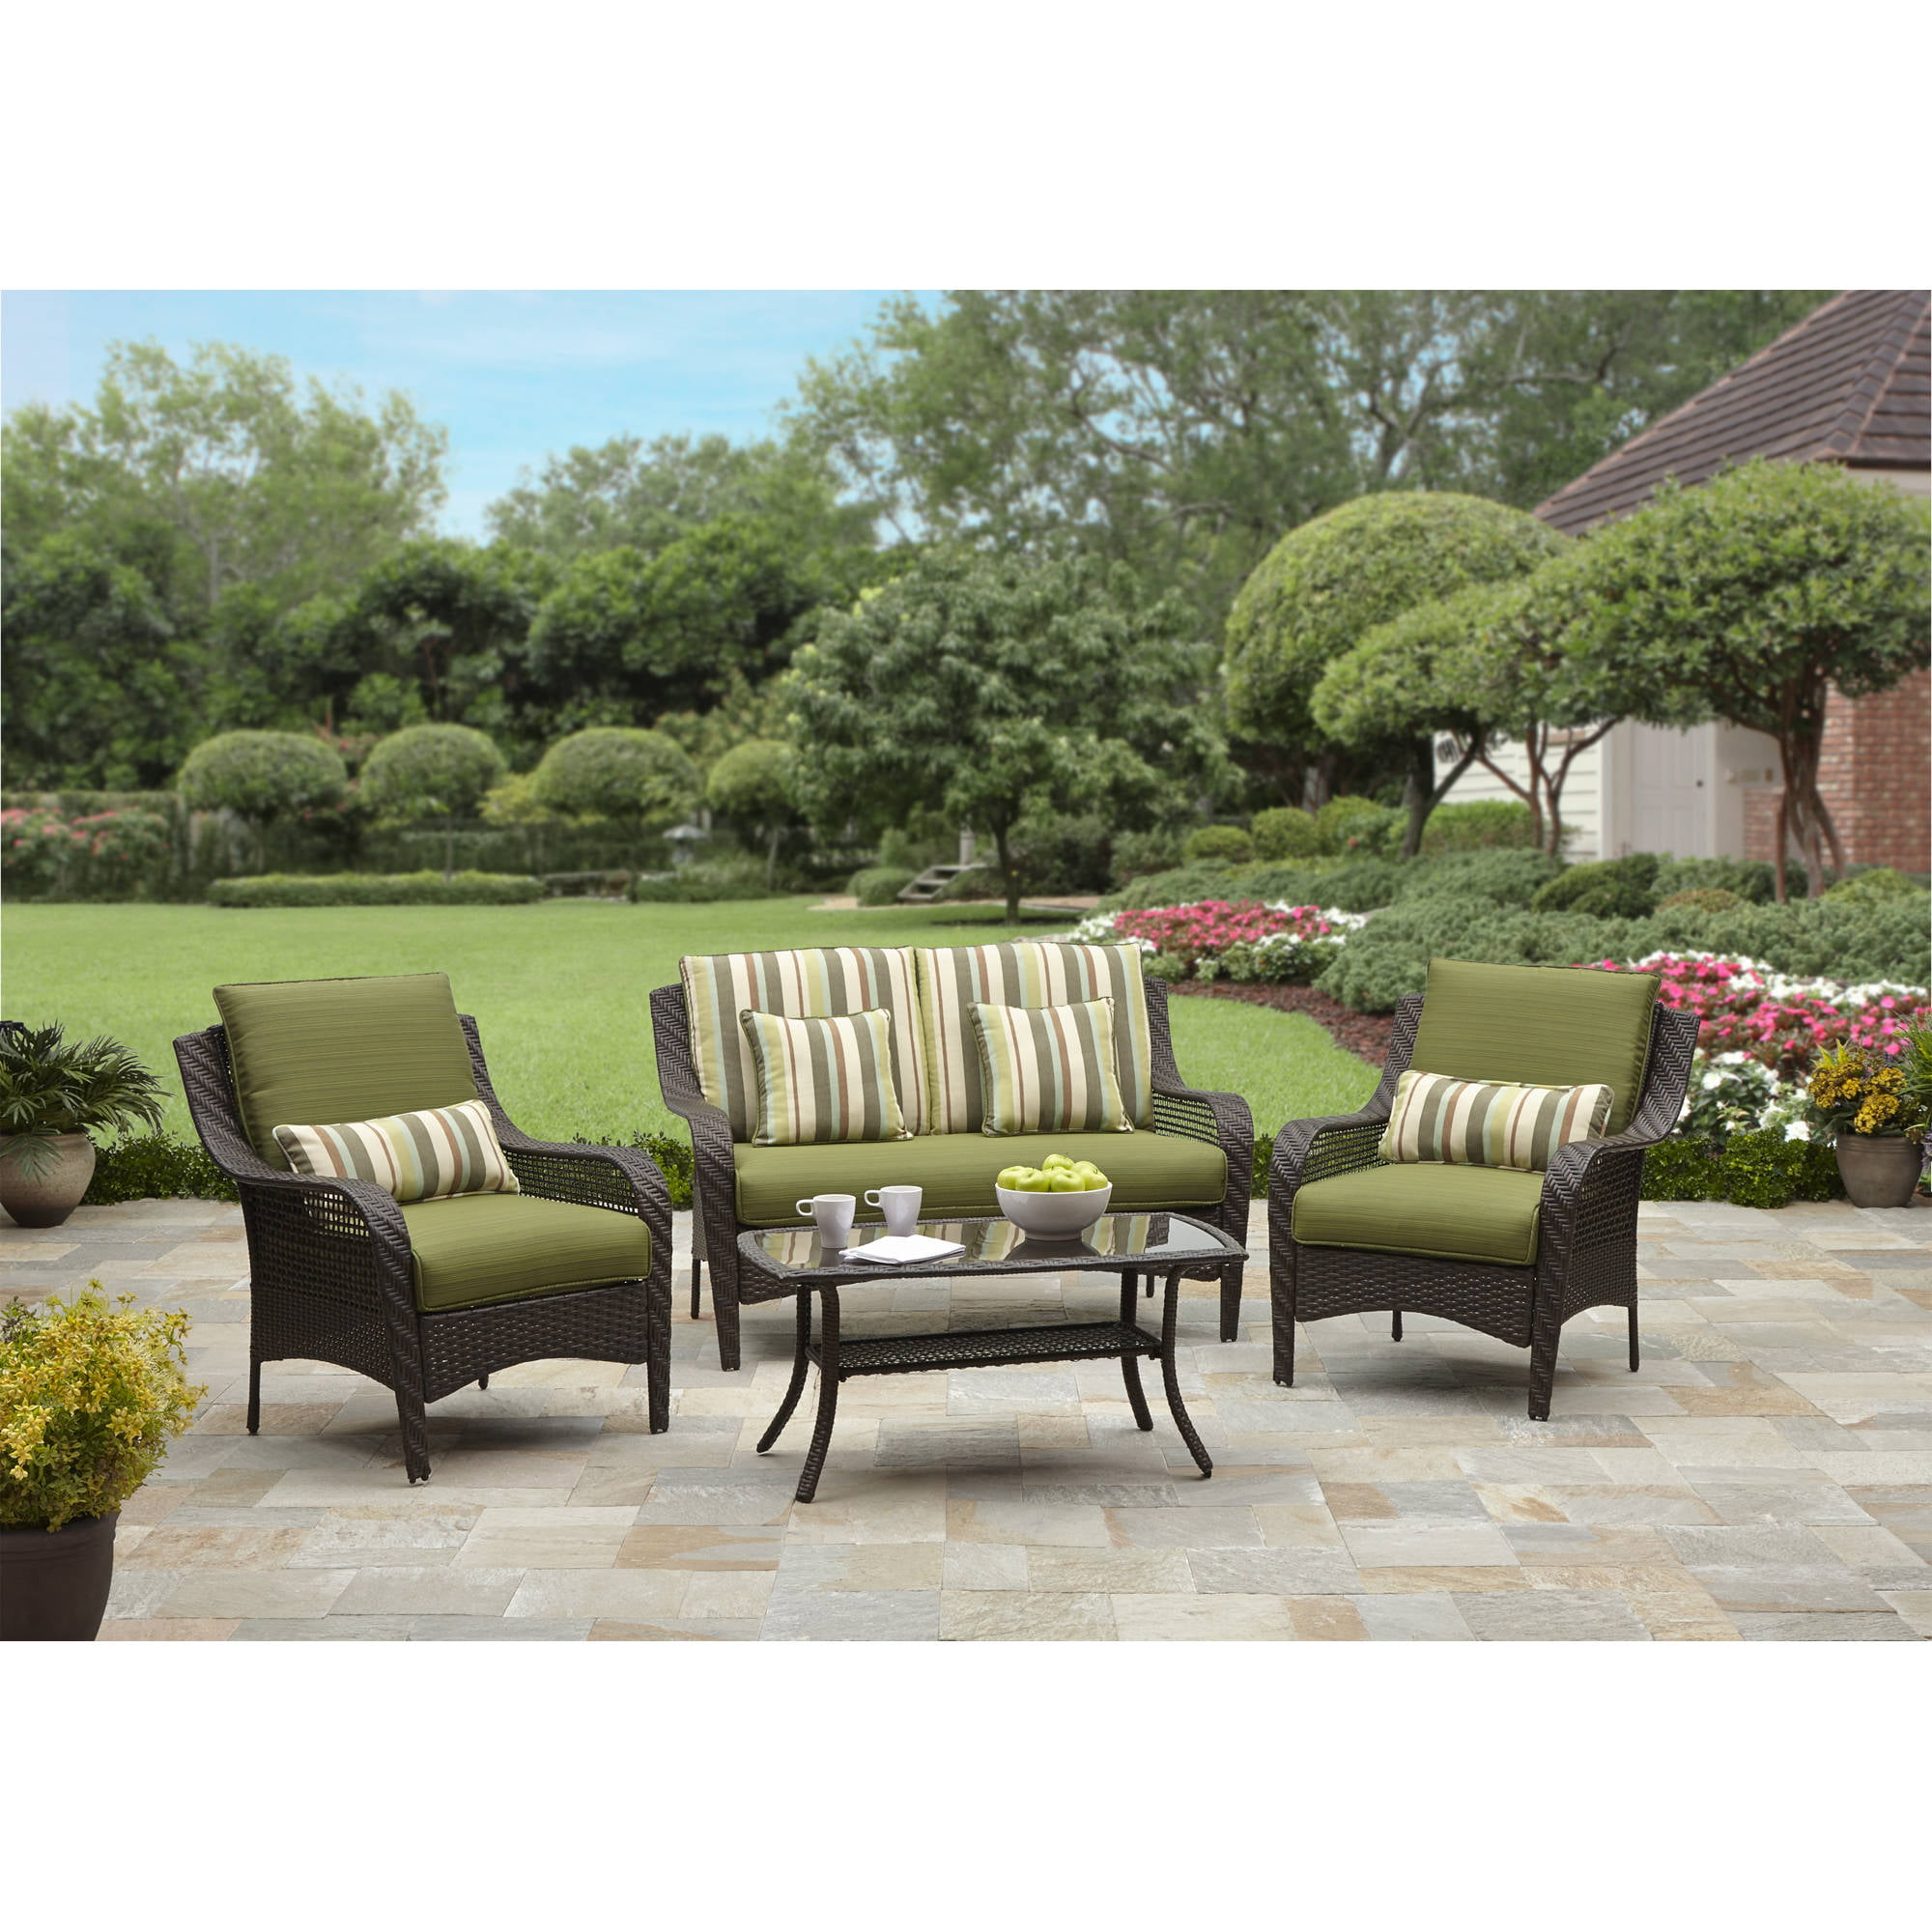 Better Homes and Gardens Amelia Cove 4-Piece Woven Patio Conversation Set, Seats 4 by